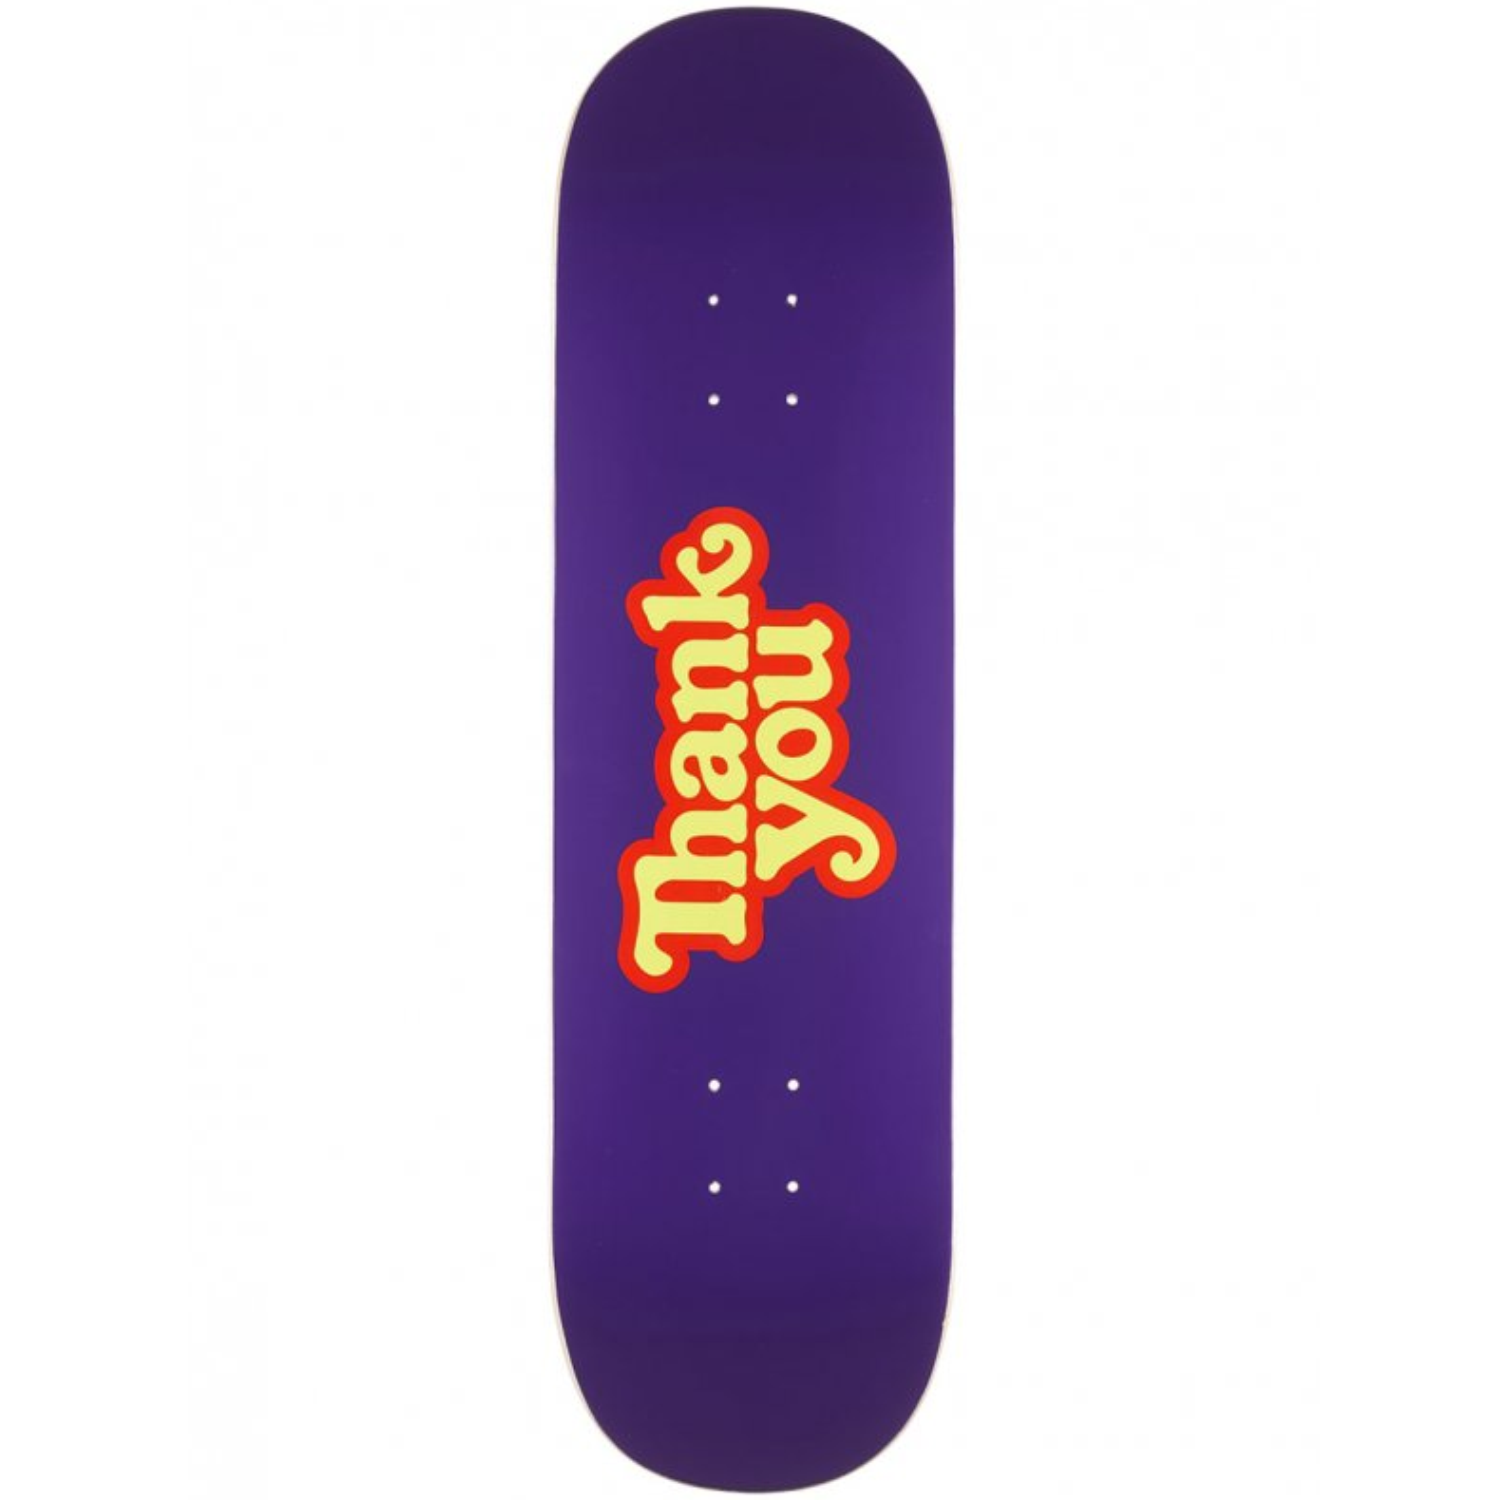 Tabla Thank You Logo purple - 8.5